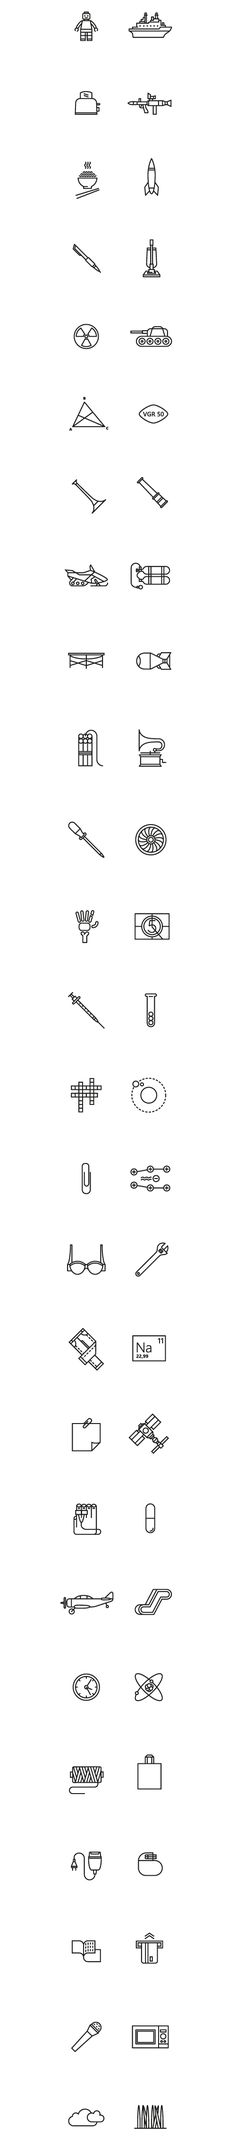 Pictograms for Esquire on Behance